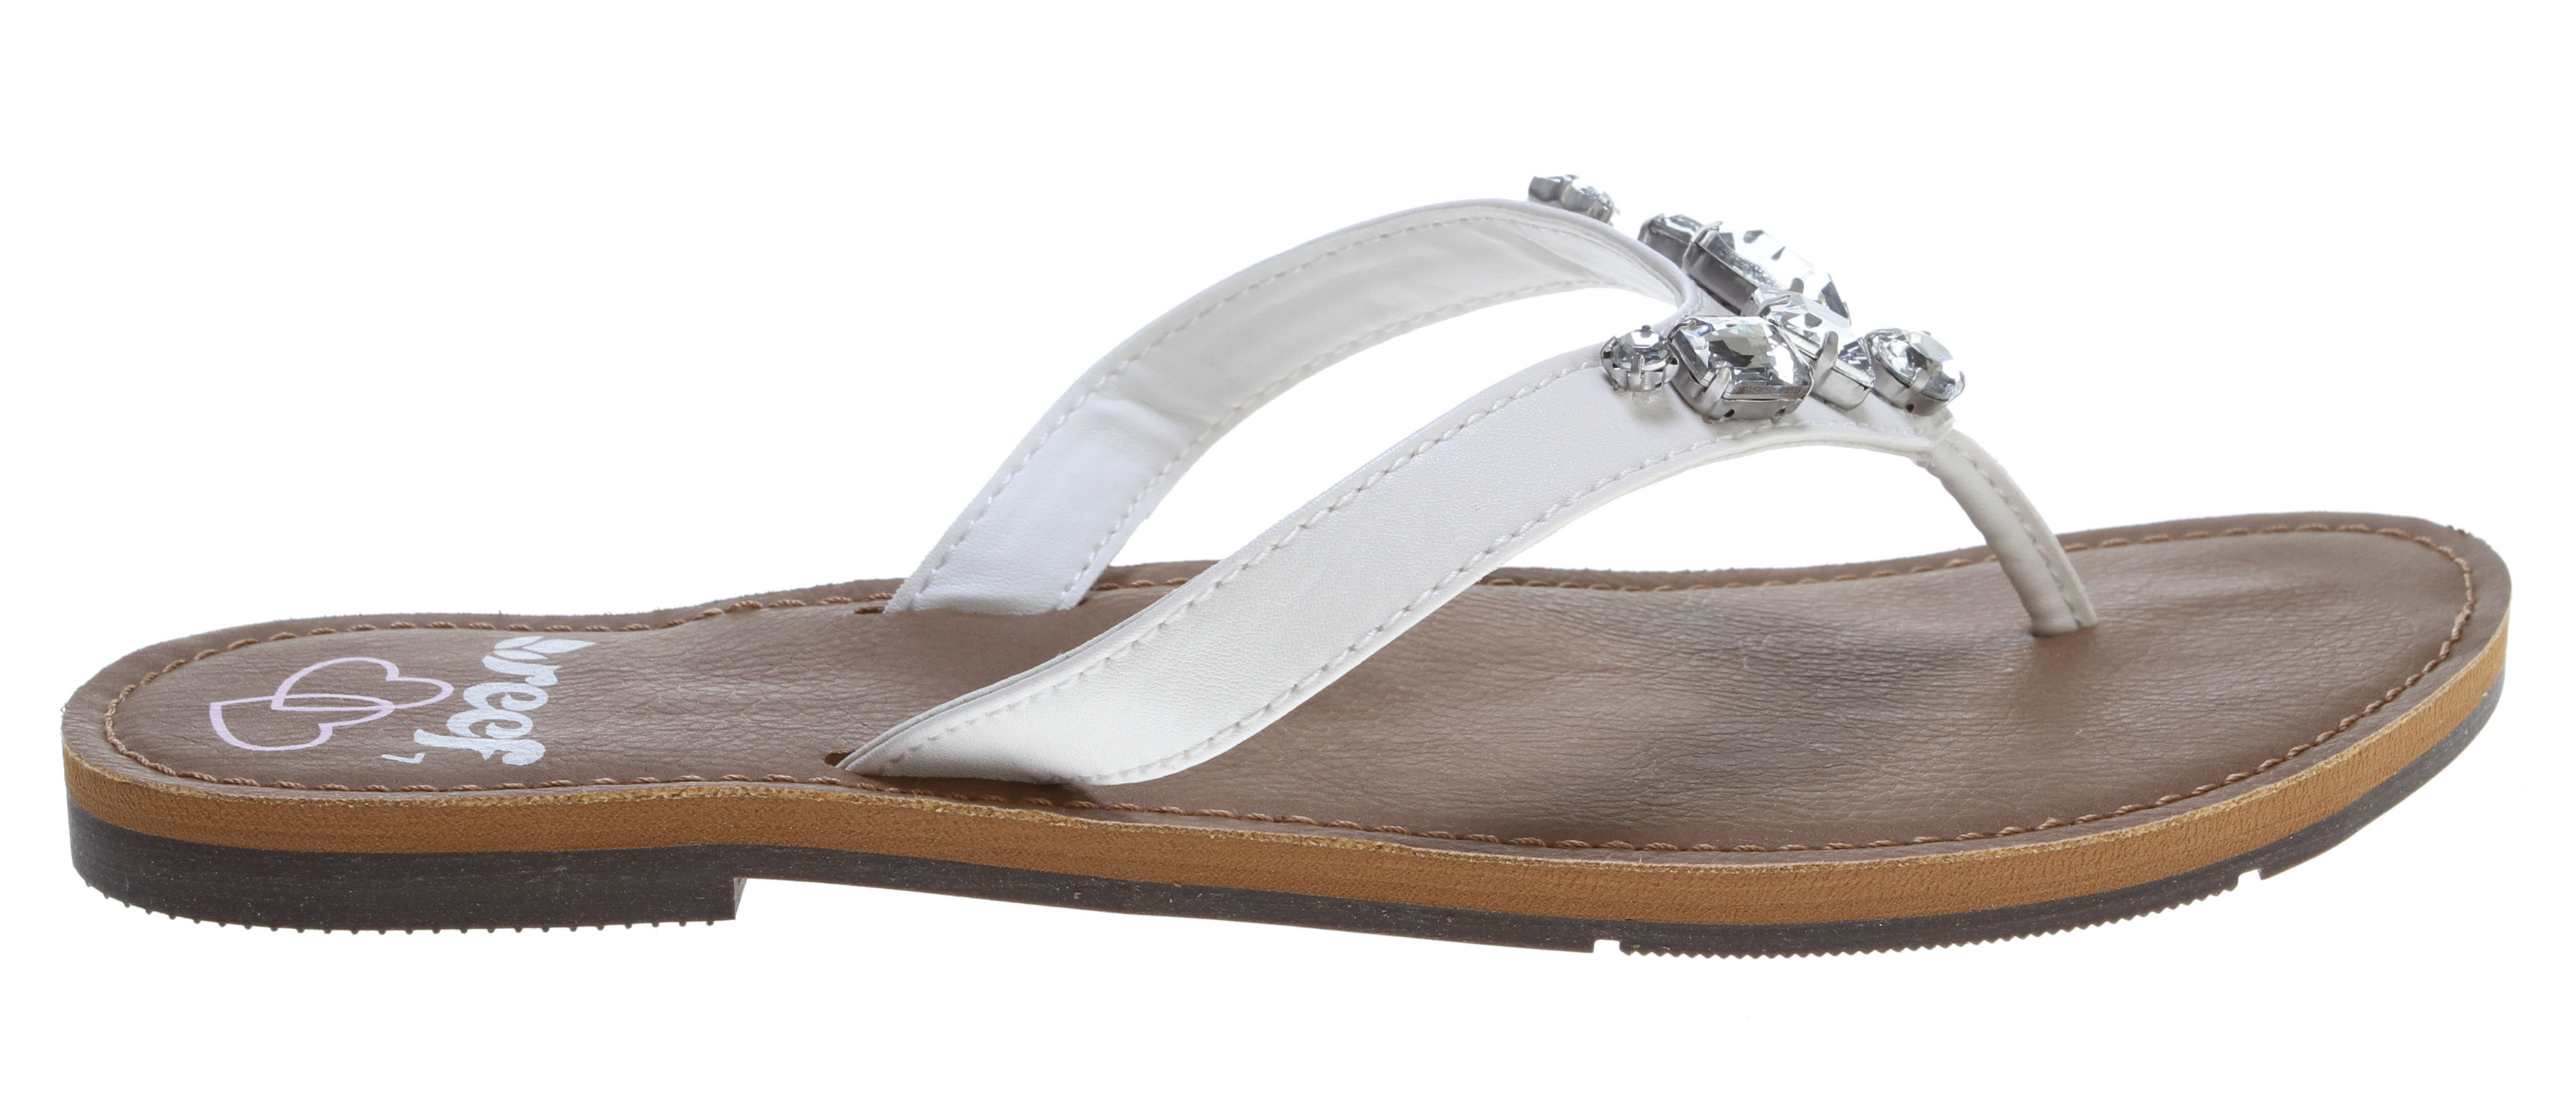 Surf Key Features of the Reef Bling It On Wedding Sandals: Part of the reef wedding collection Synthetic strap with large decorative jewels synthetic leather deck; eva footbed with anatomical arch support Durable rubber outsole and heel - $23.95